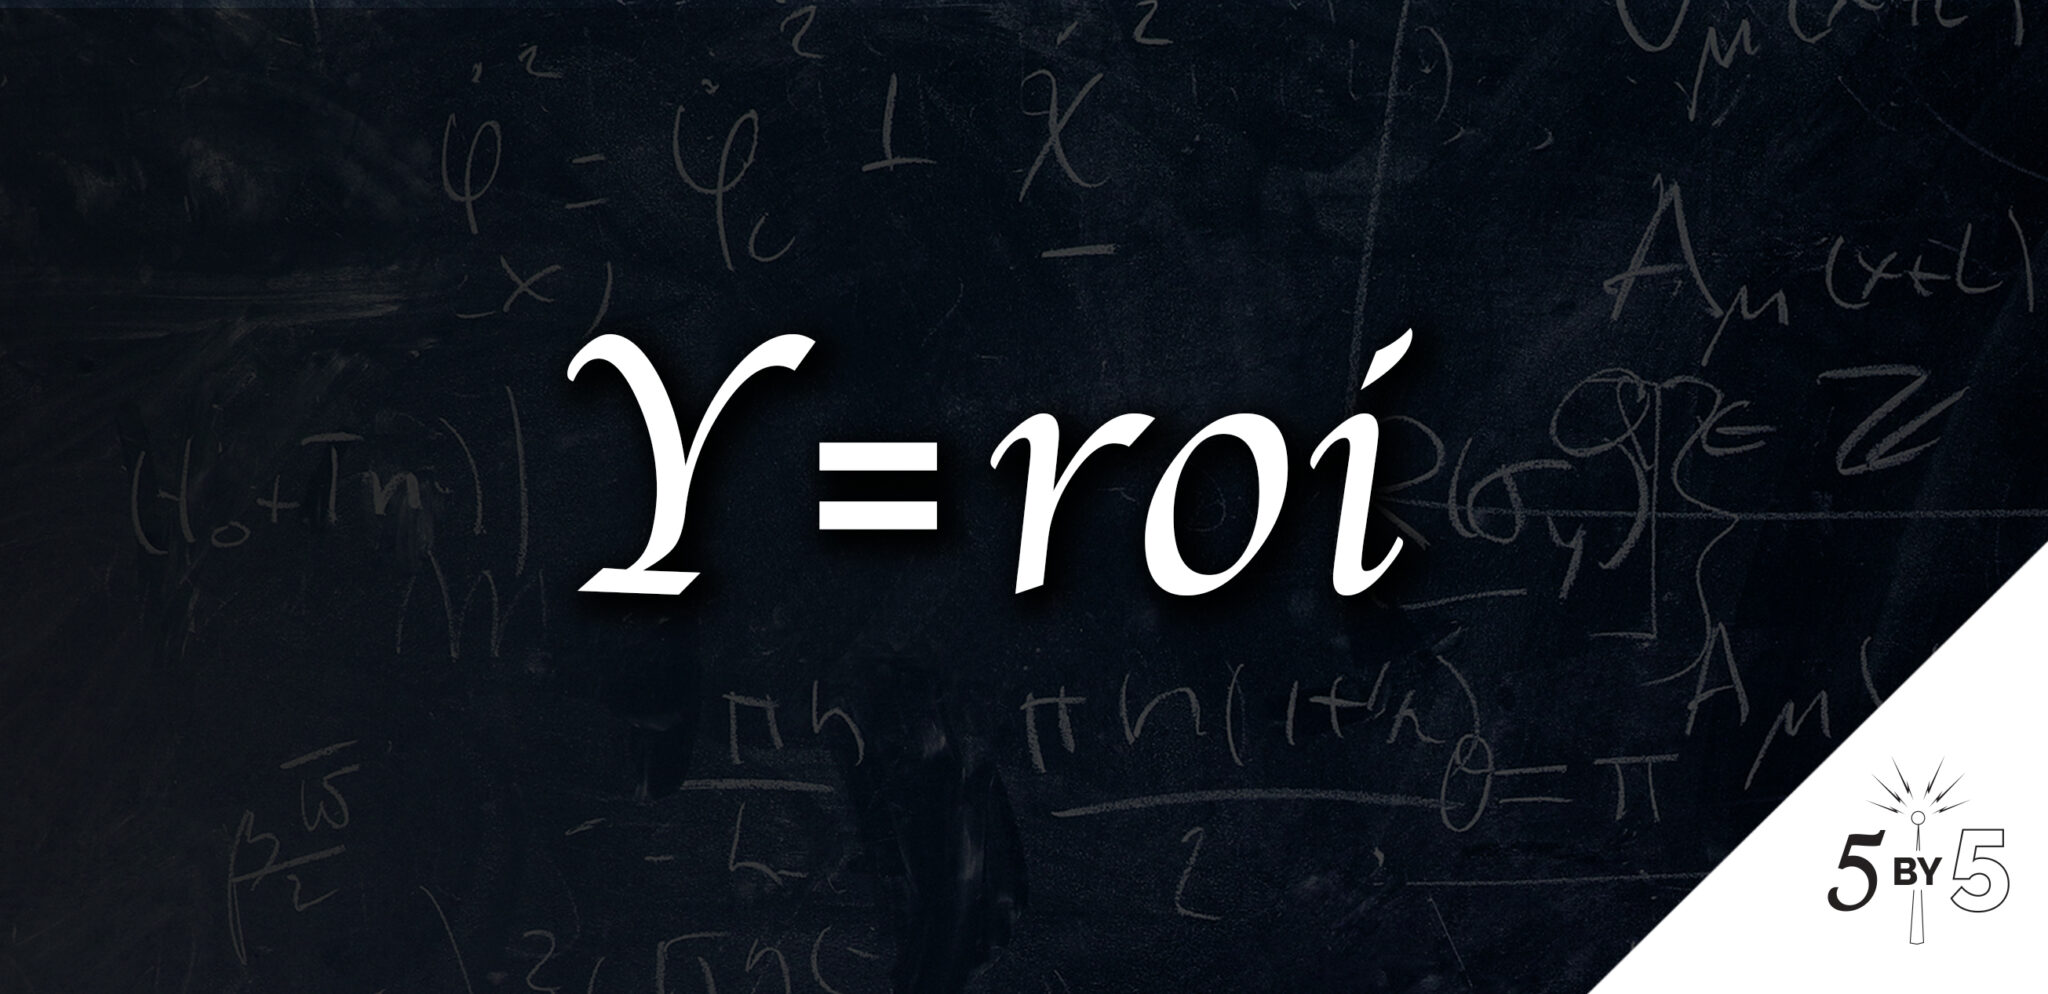 y=roi equation on chalkboard